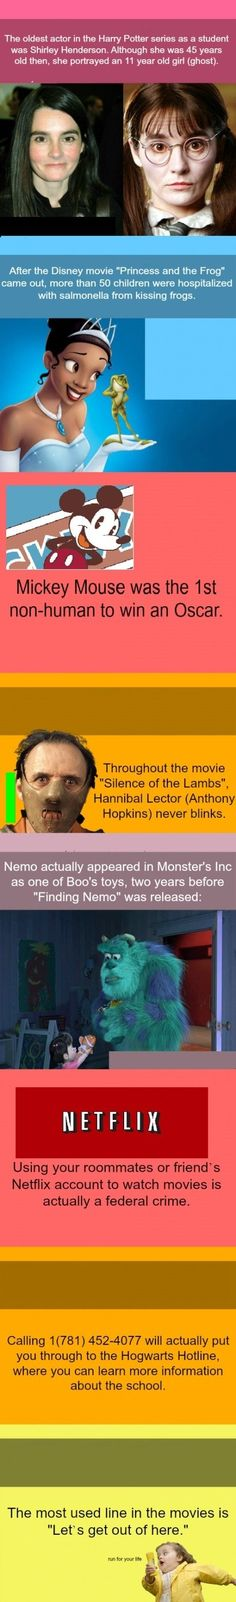 Some useless movie facts! :P